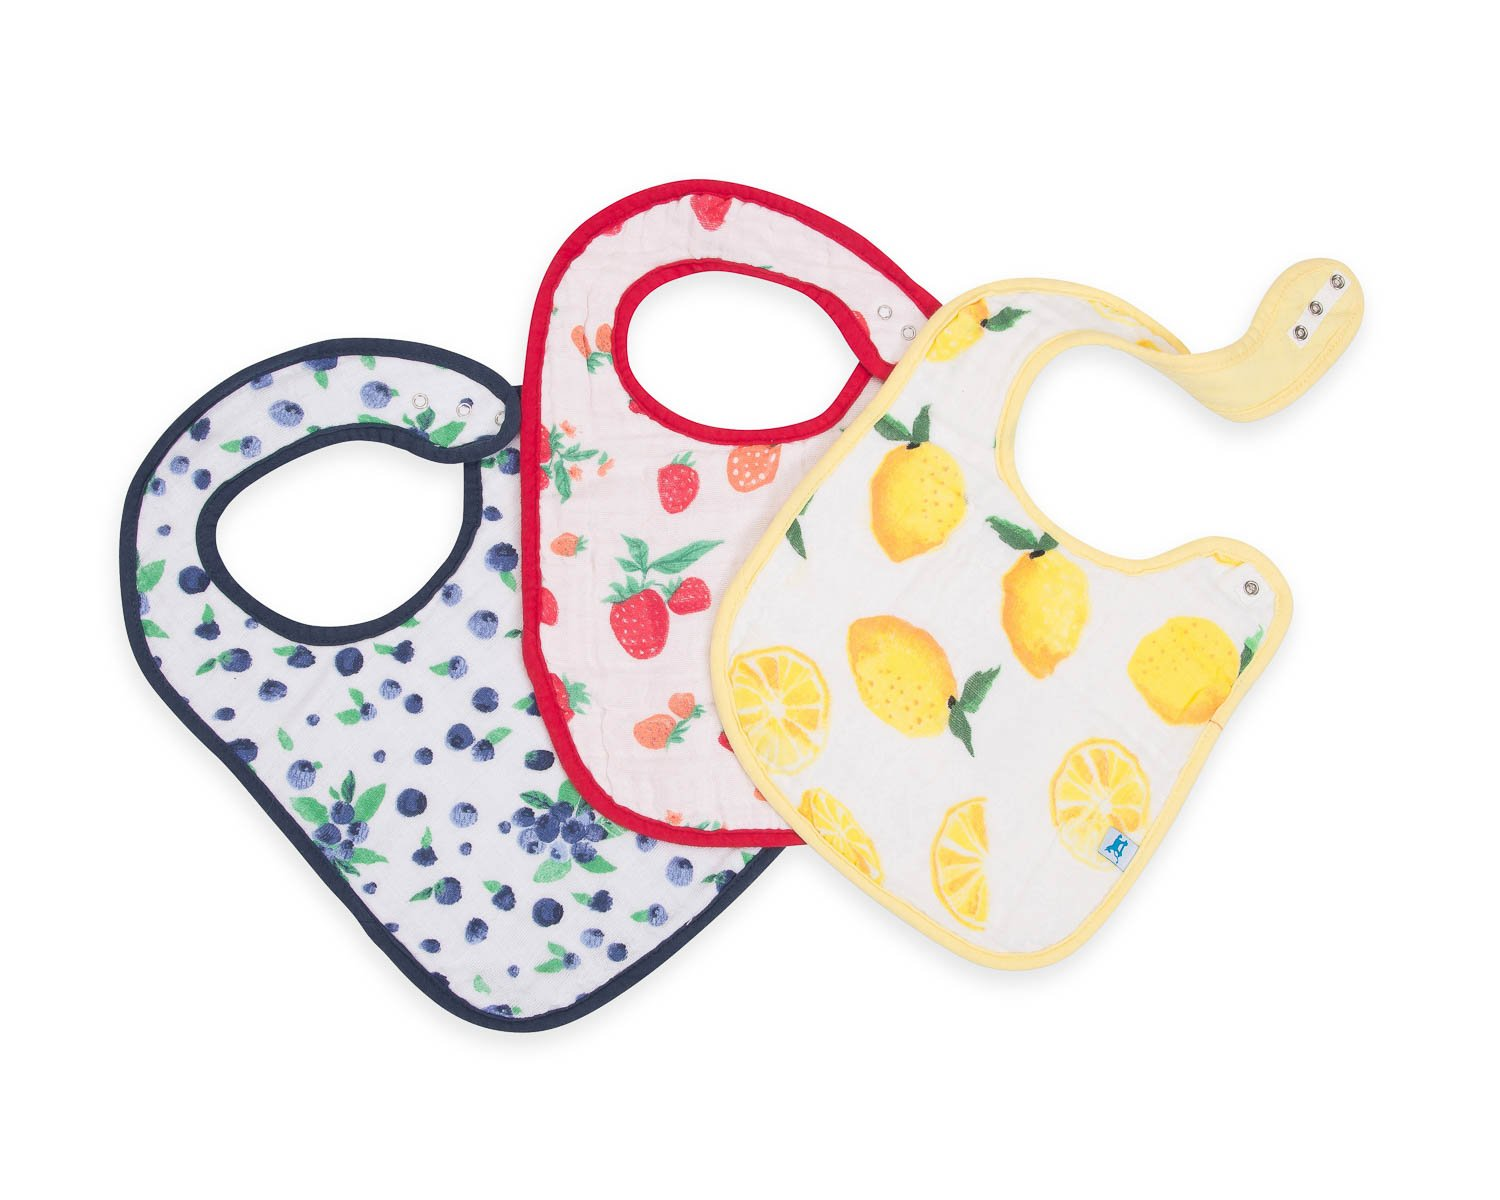 COTTON MUSLIN CLASSIC BIB SET - BERRY LEMONADE - Made by McNamara